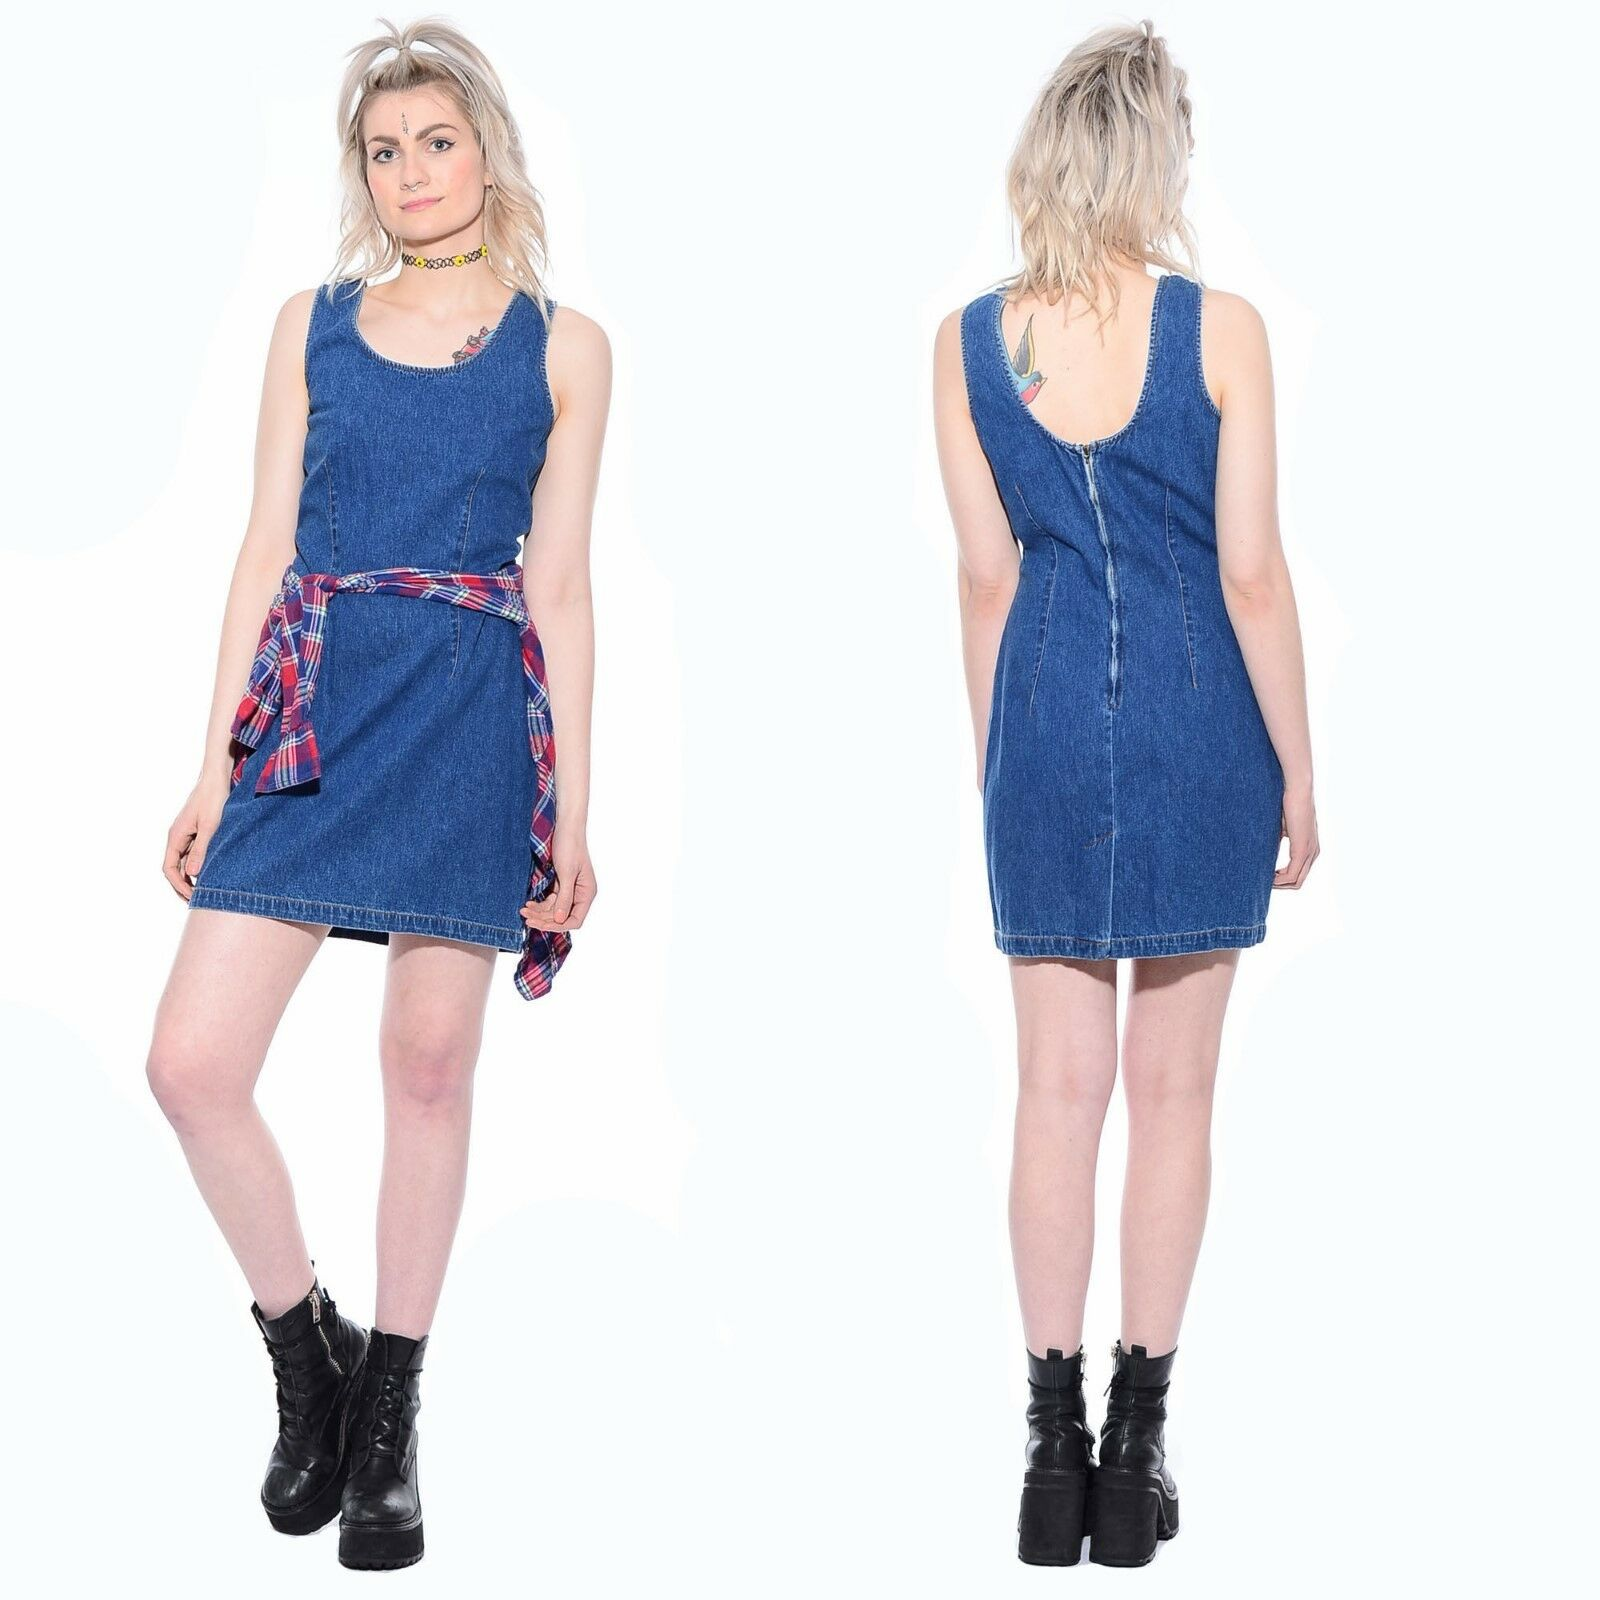 Vintage DENIM Grunge Hip-Hop Schoolgirl Clueless bluee Jean Jumper Mini Dress M